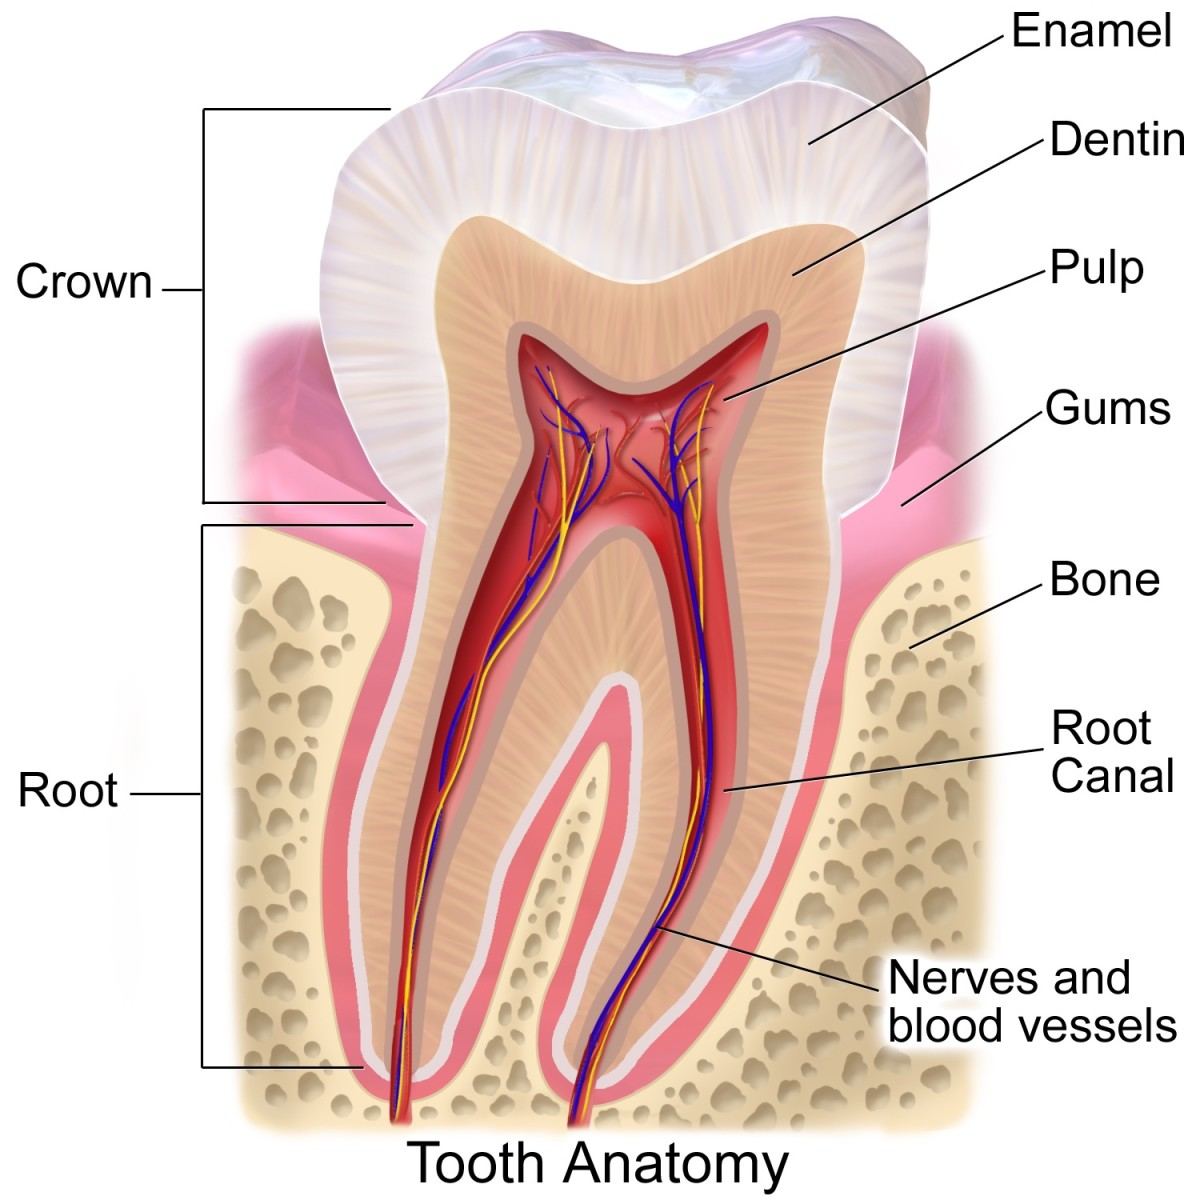 Anatomy of a human tooth